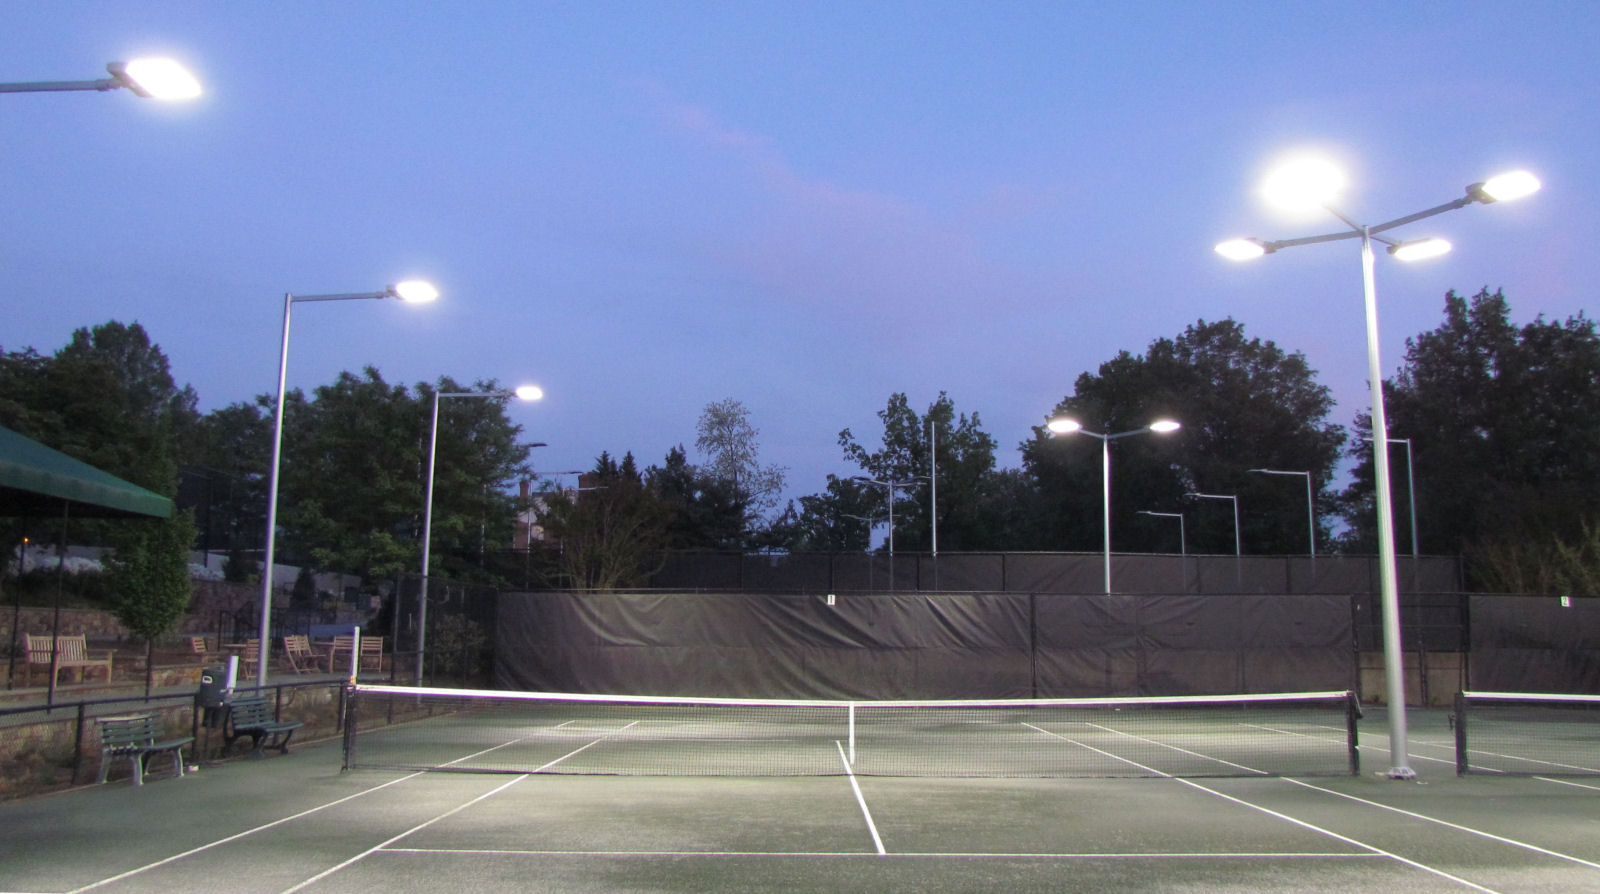 Led Light Outdoor Fixture Brite court tennis lighting led tennis lighting for indoor outdoor new led lighting for outdoor tennis court washington golf and country club workwithnaturefo